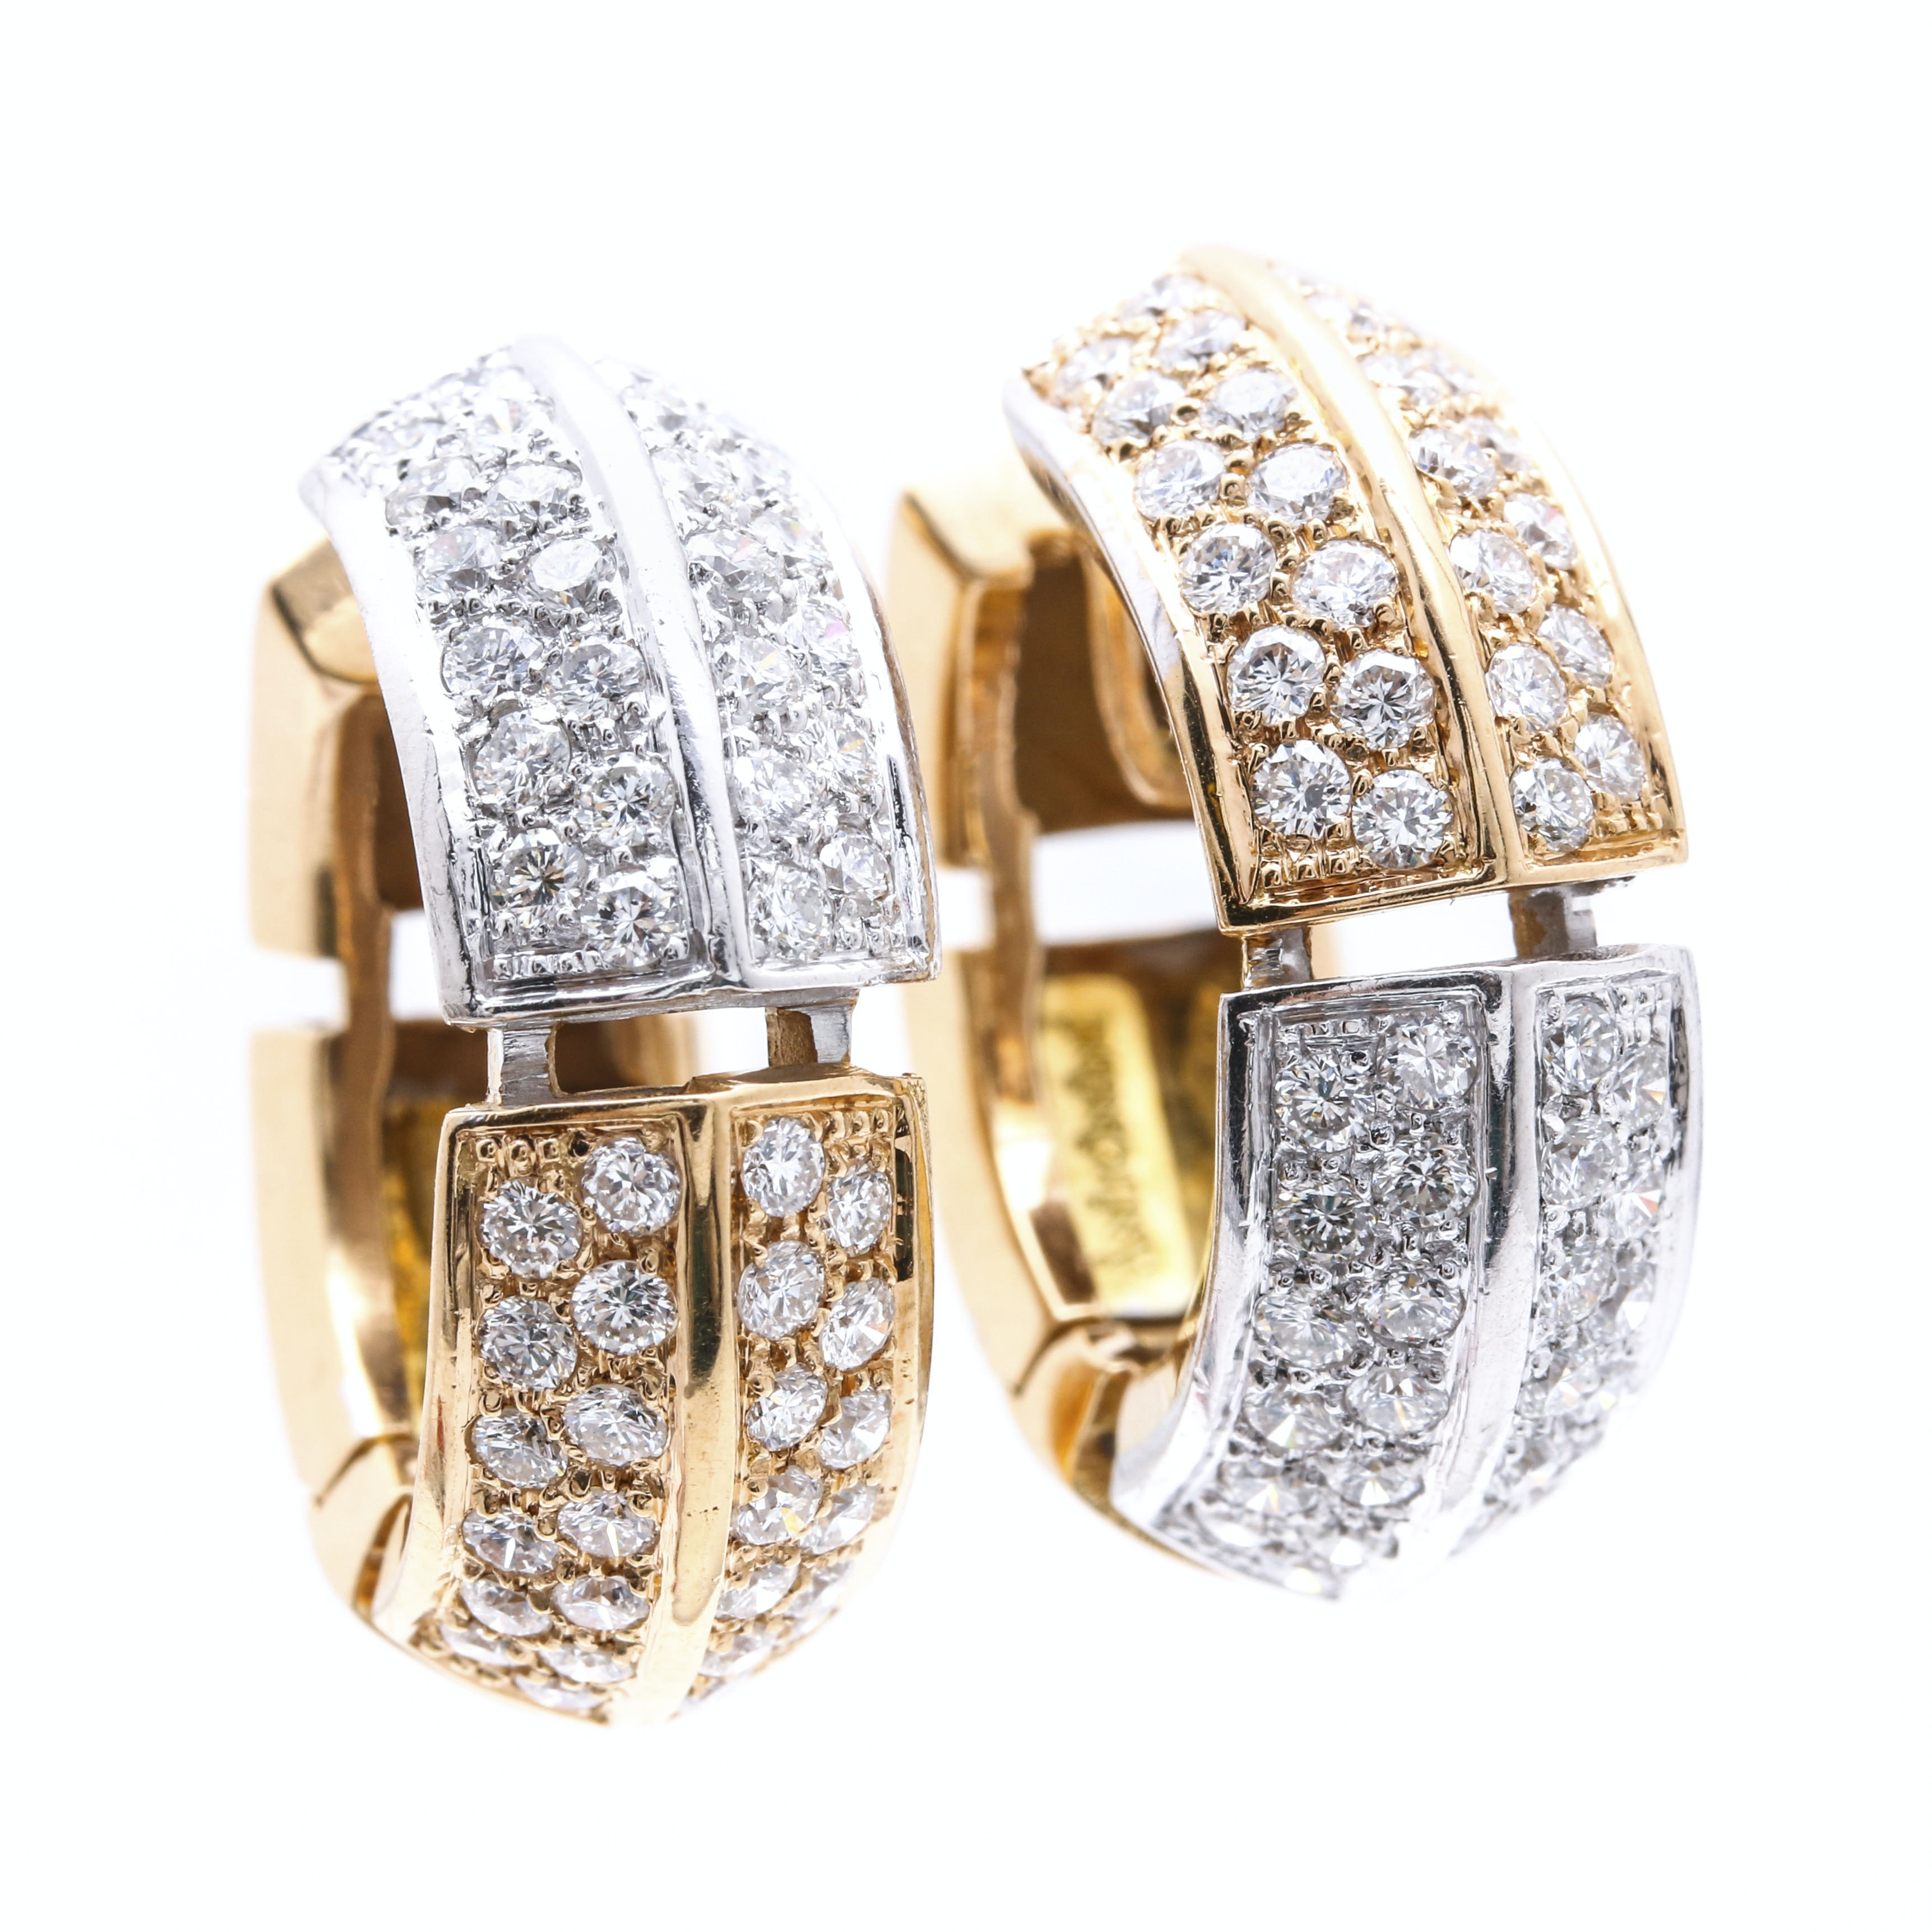 Antonini 18K Two Tone Gold 2.20 CTW Diamond Huggie Earrings